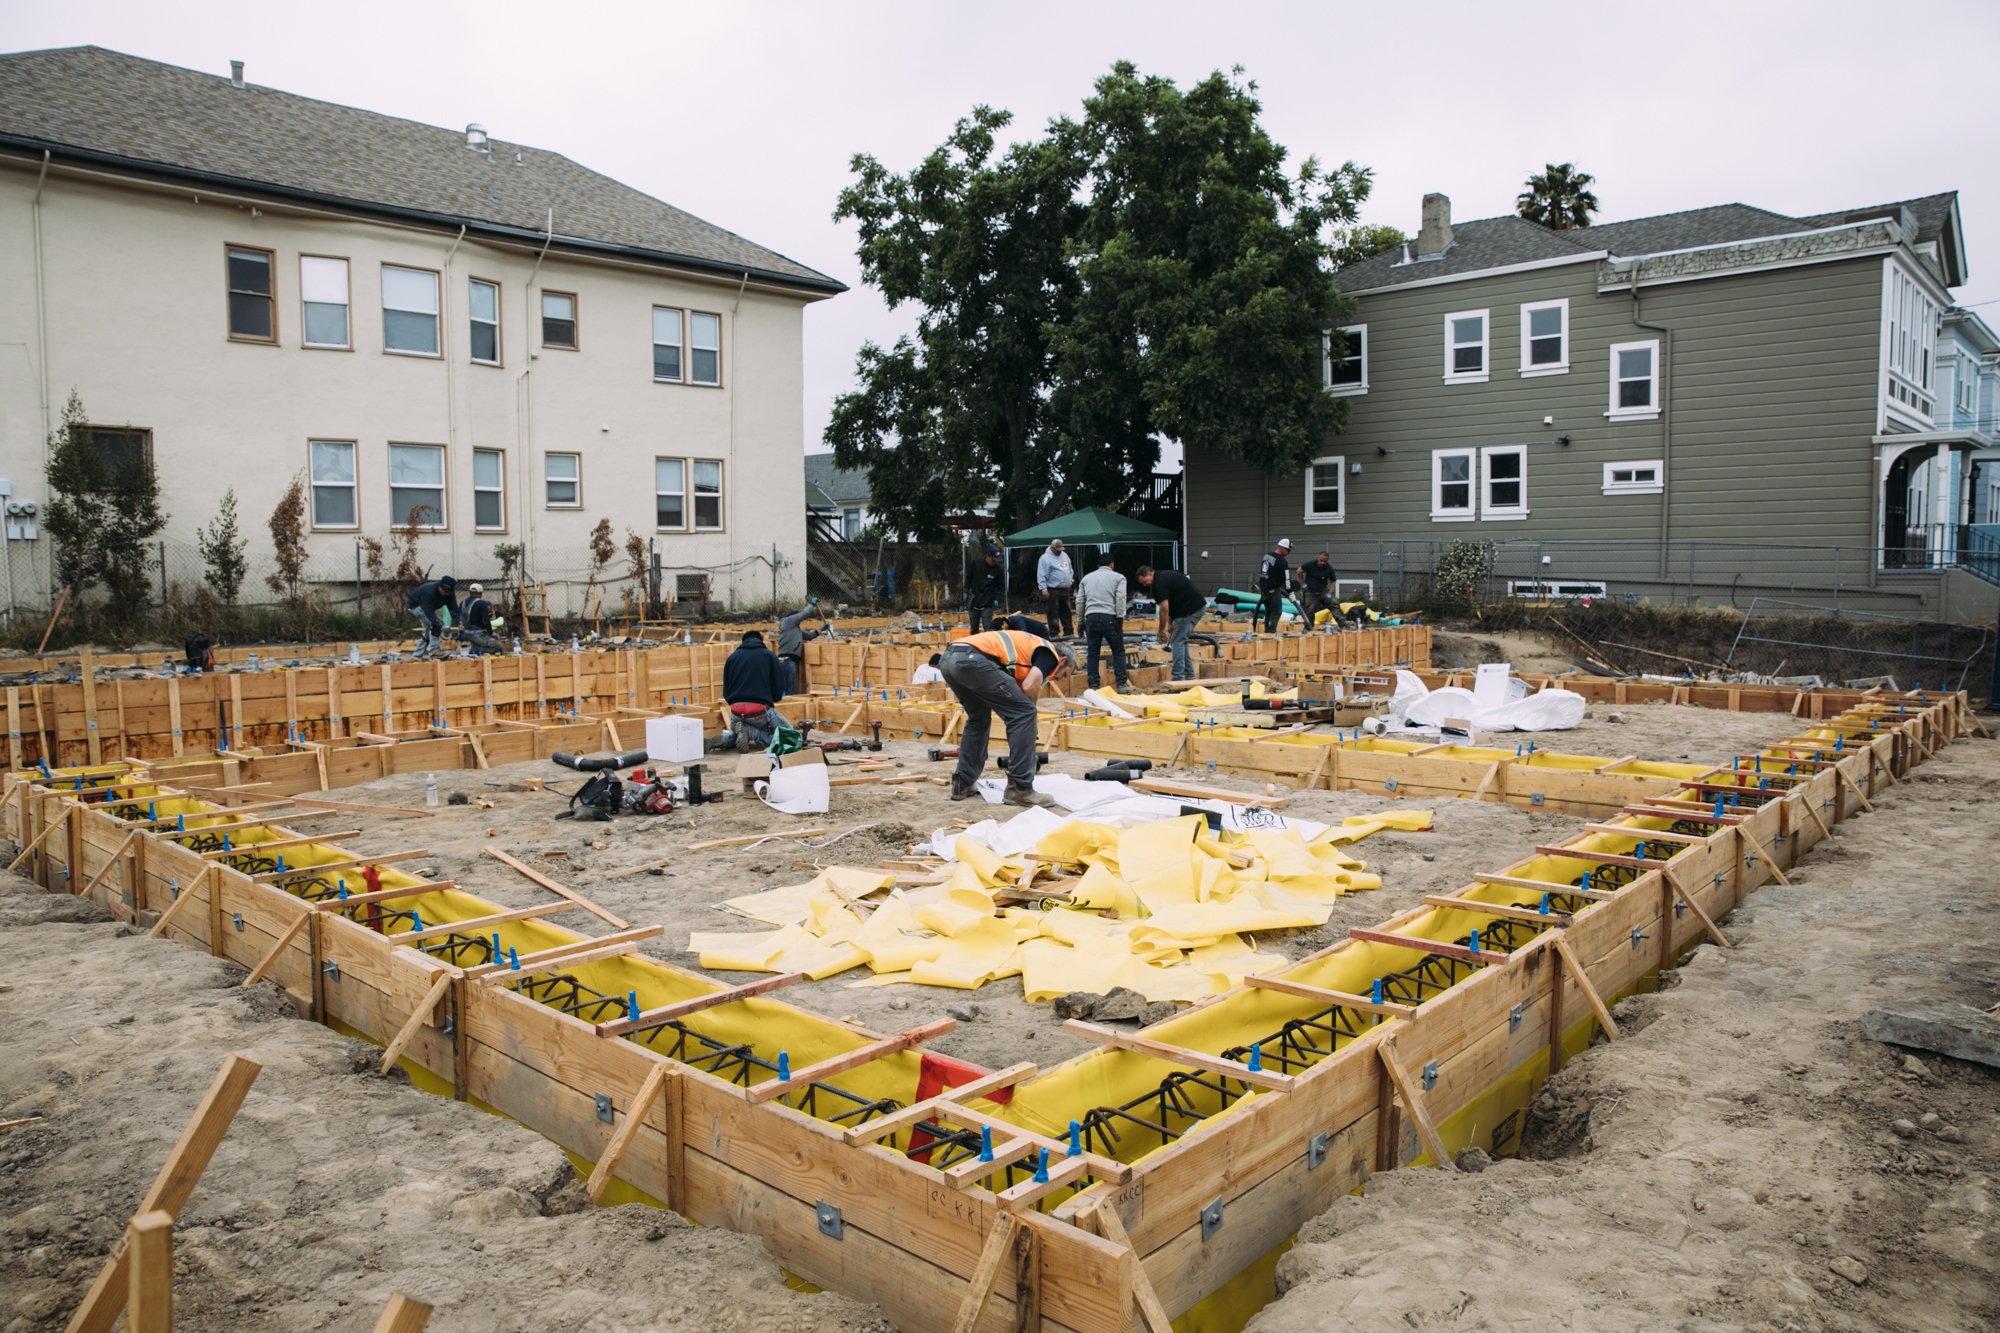 061019-00296_18thLinden_Construction.jpg